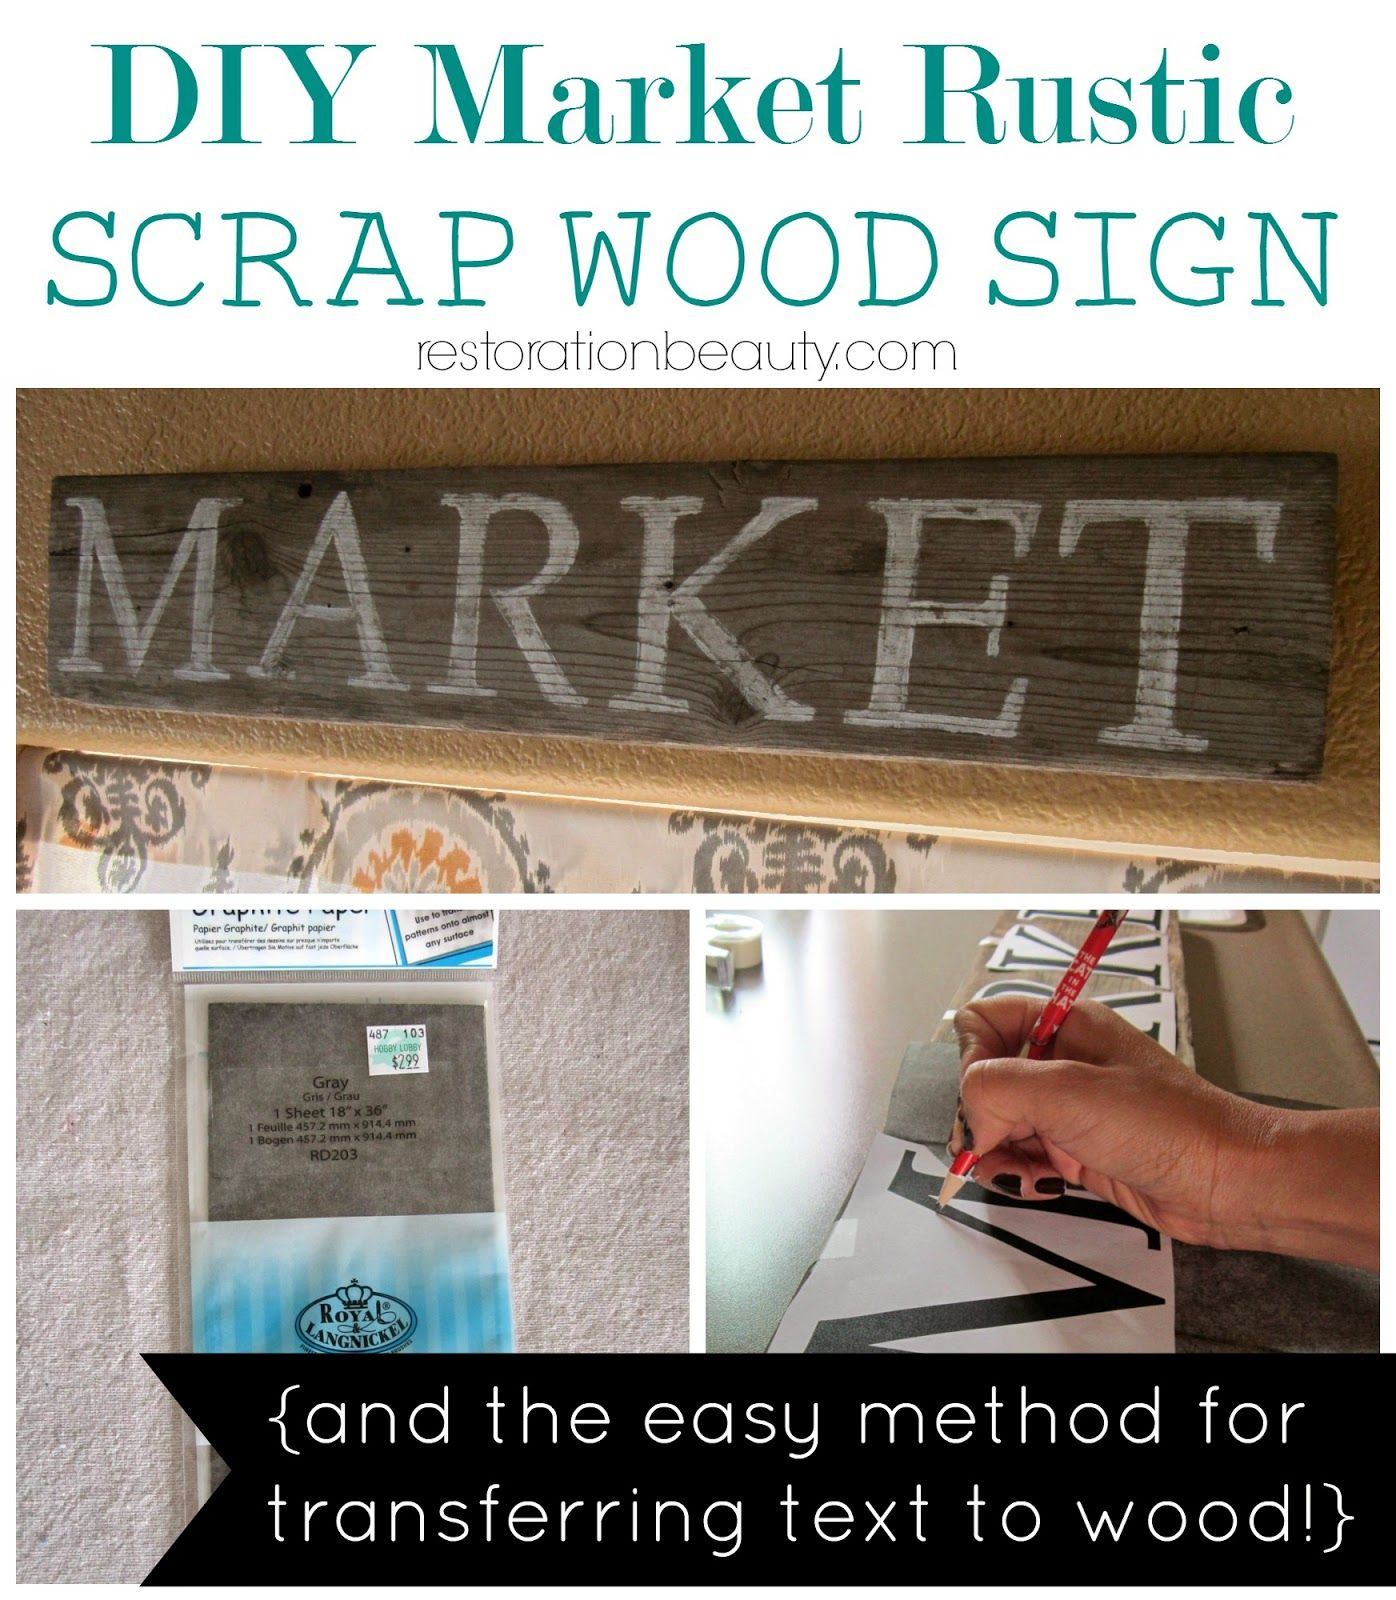 diy market scrap wood sign and the easy method for transferring